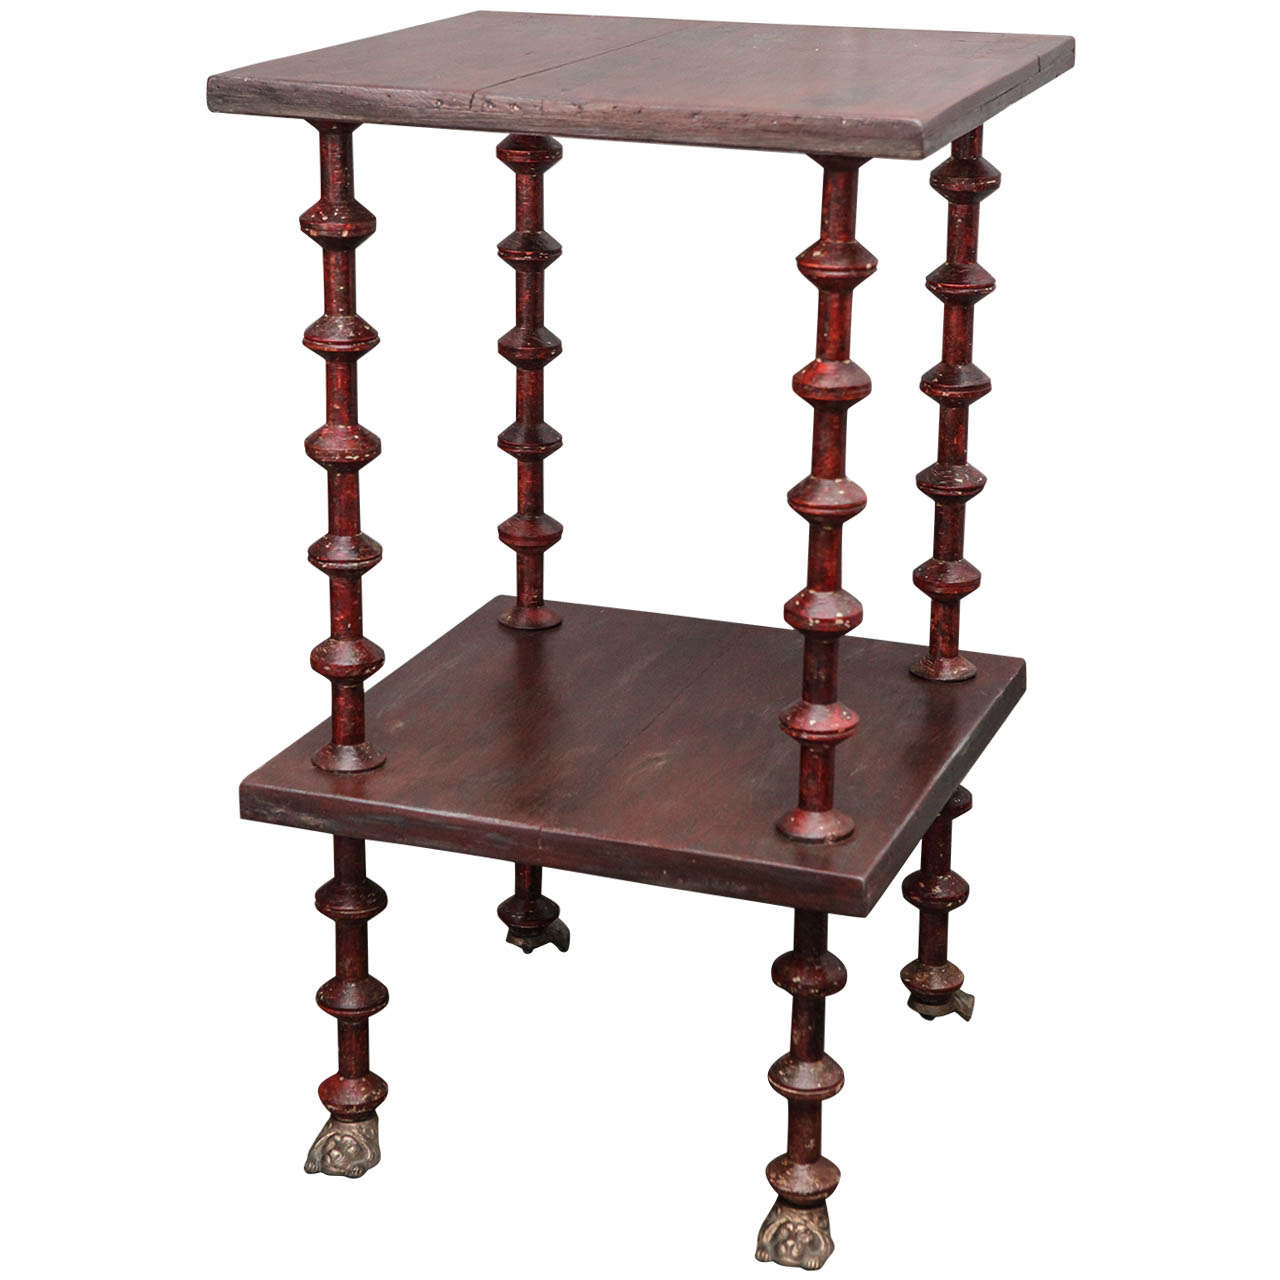 Victorian furniture table - 19th Century Victorian Pine Spool Table 1